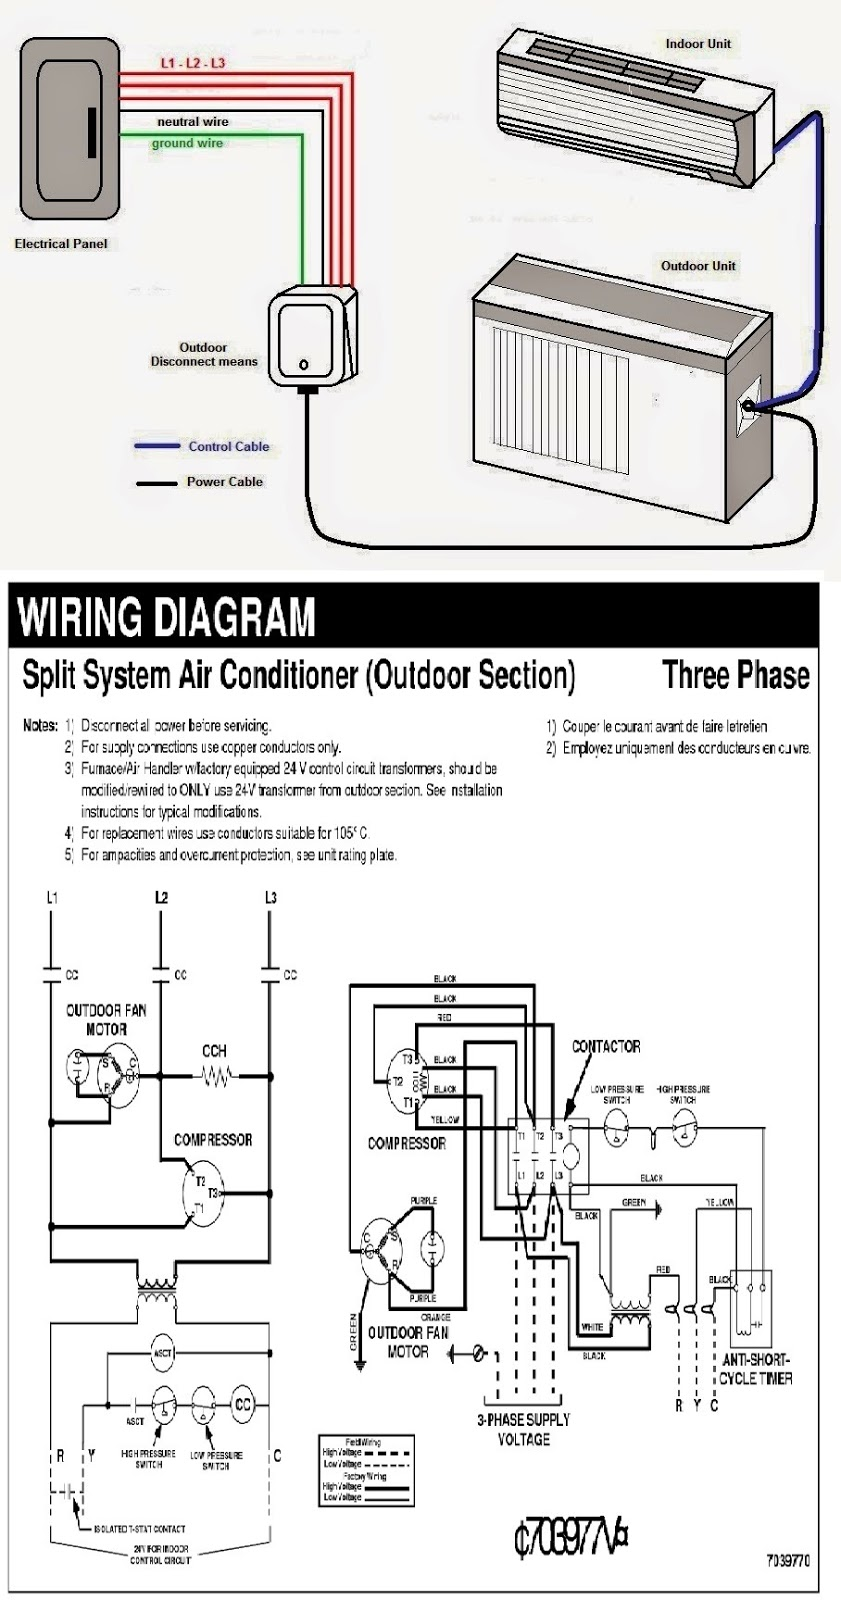 types of wiring accessories